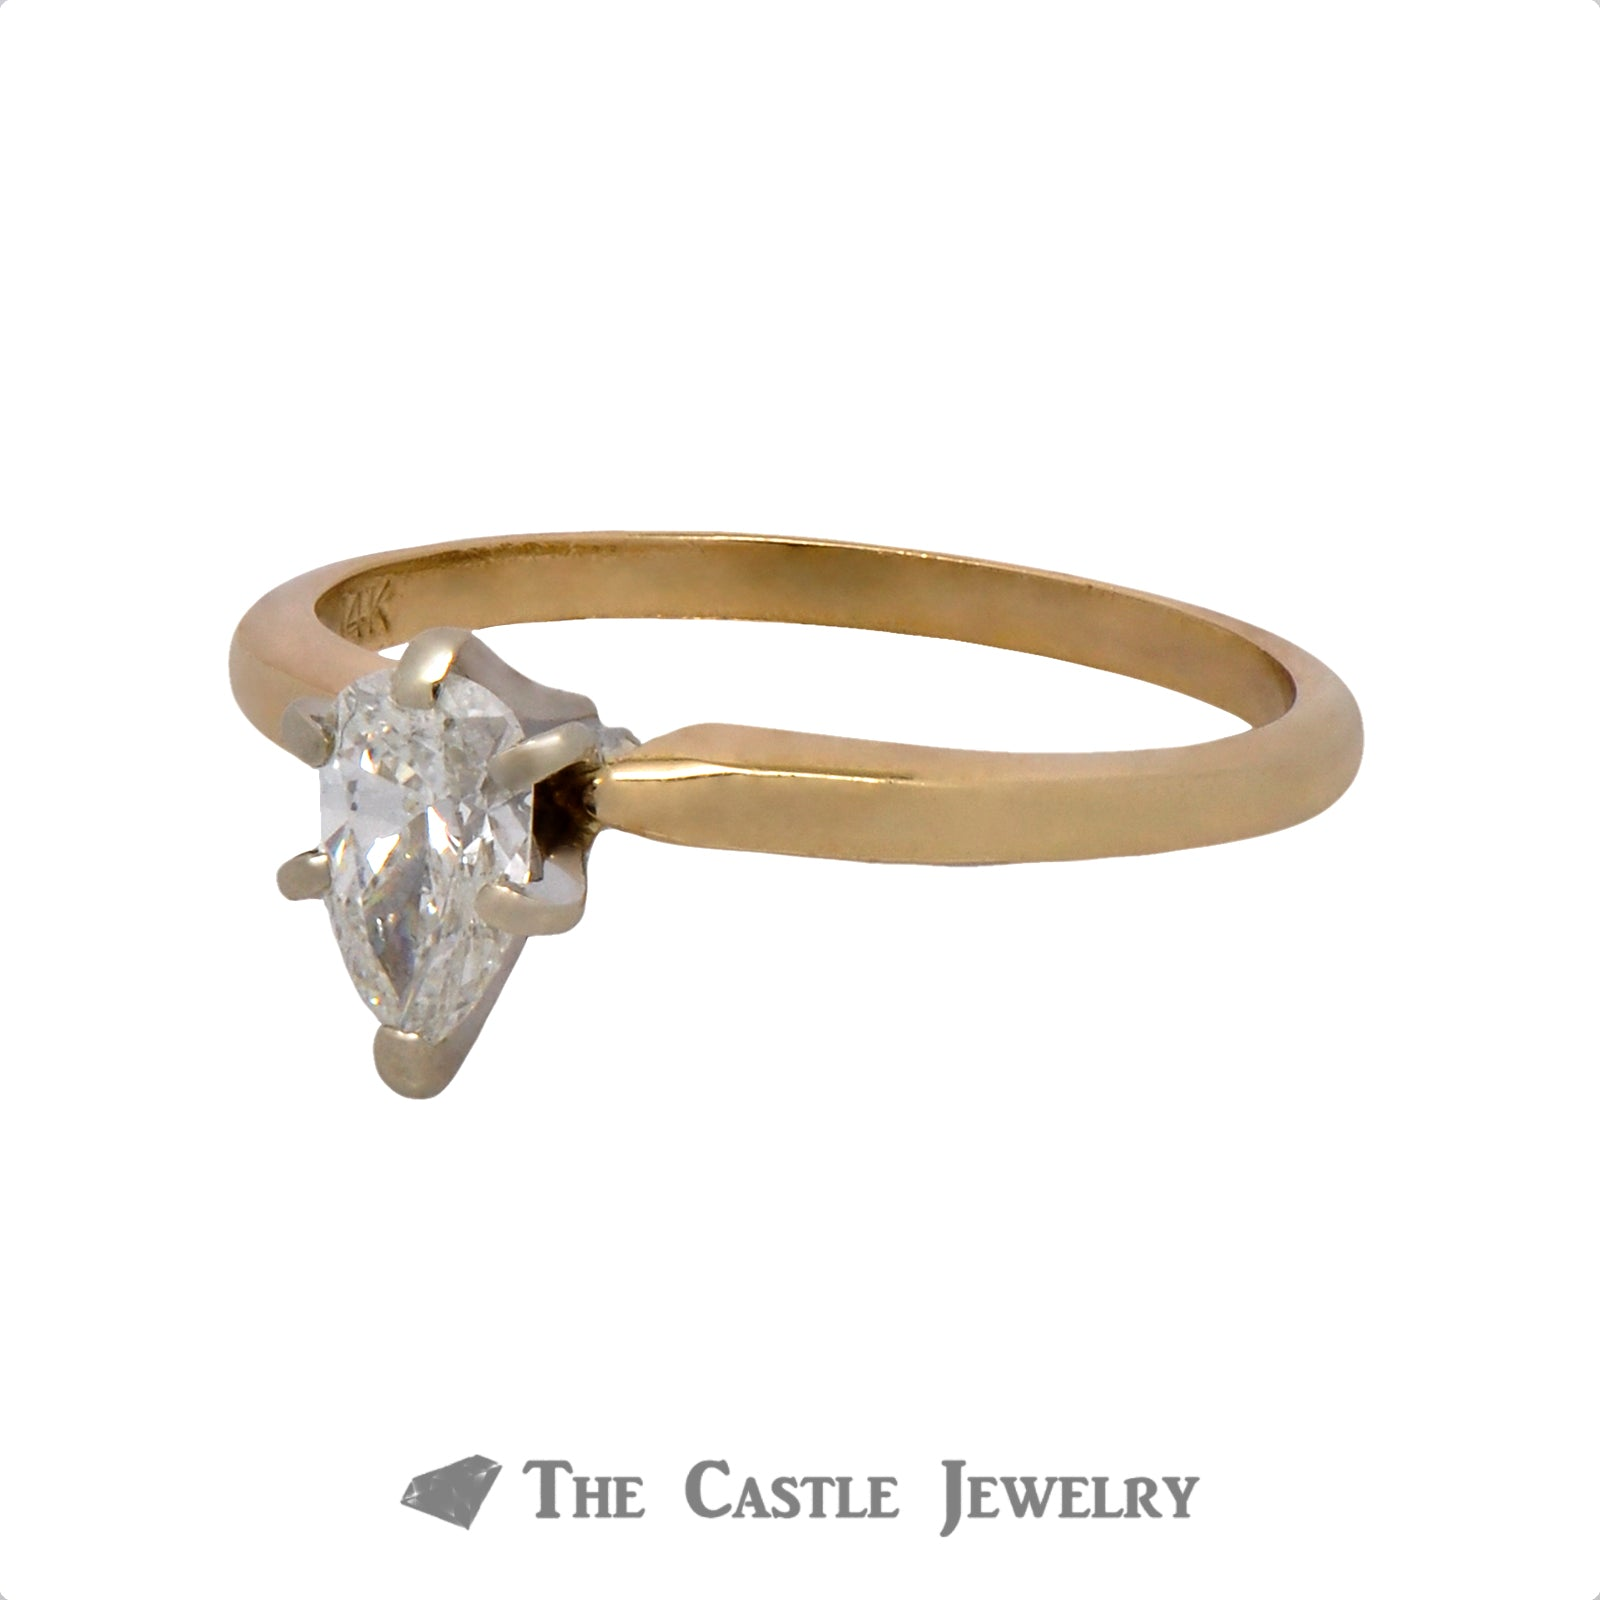 Pear Cut 1/2 carat Solitaire Engagement Ring in 14K Yellow Gold-2